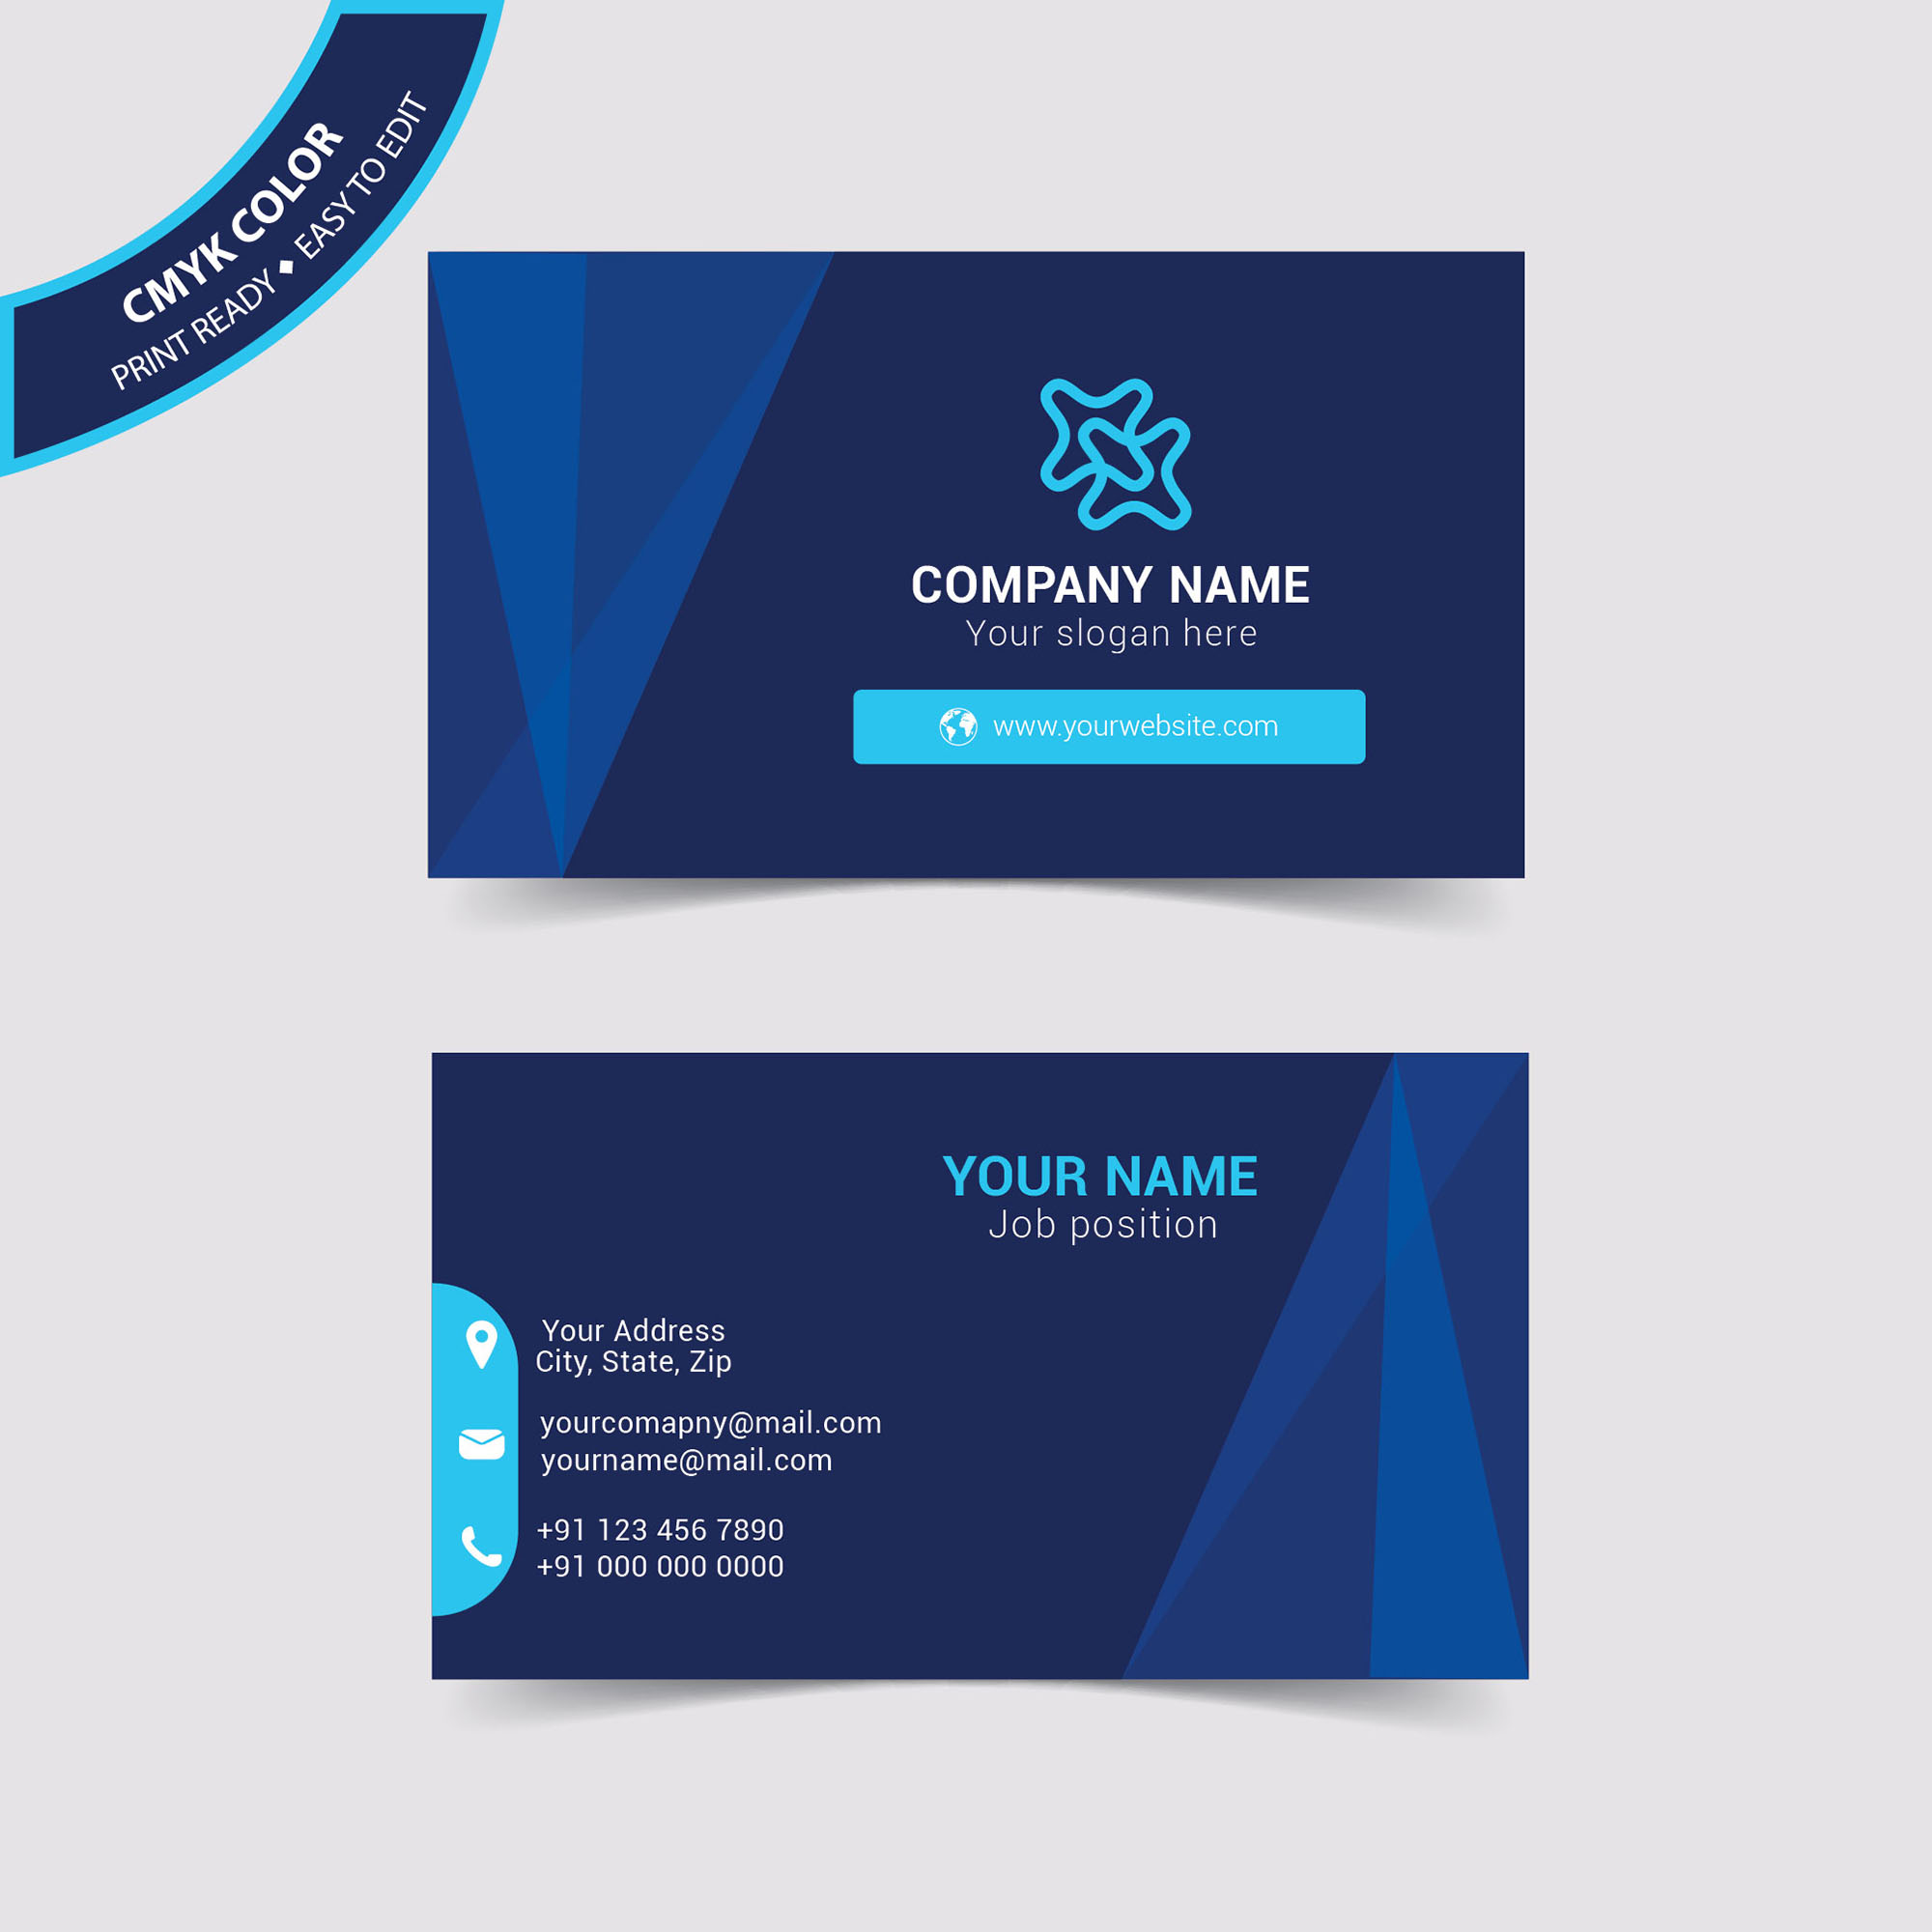 Blue Creative Business Card Design Free Download - Wisxi.com